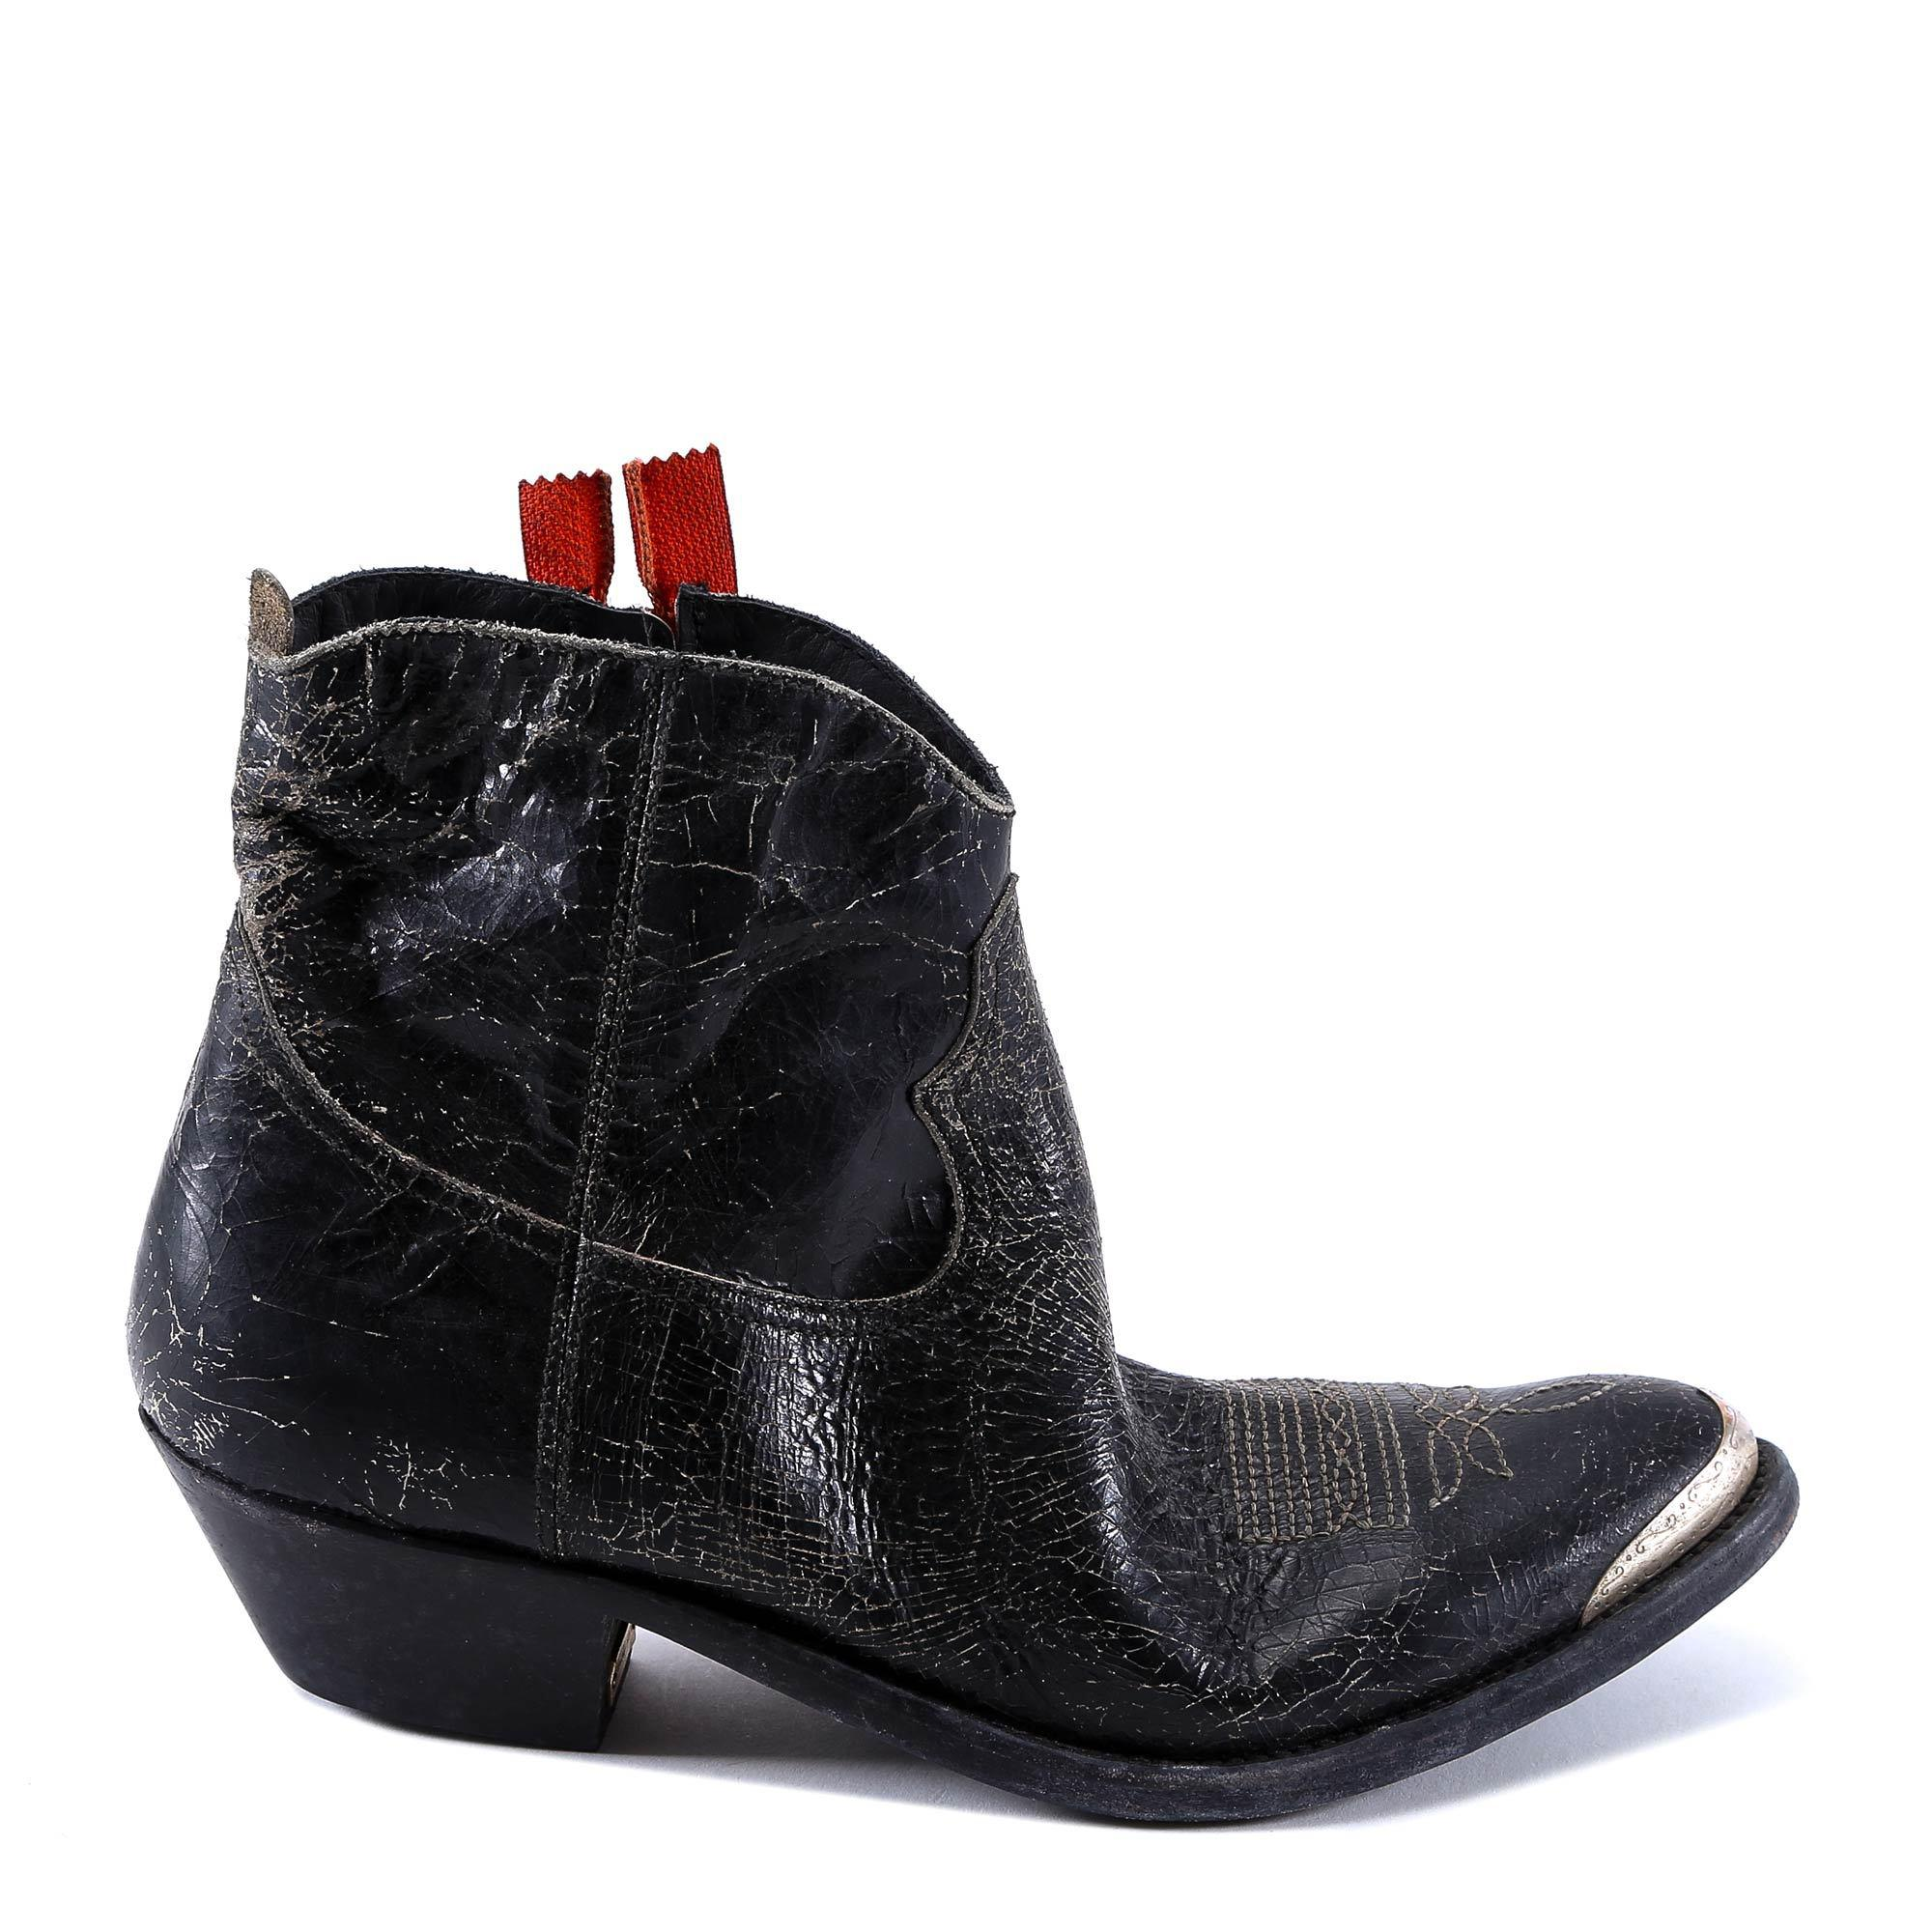 Golden Goose Deluxe Brand Young boots discount prices l3pseO2FBP